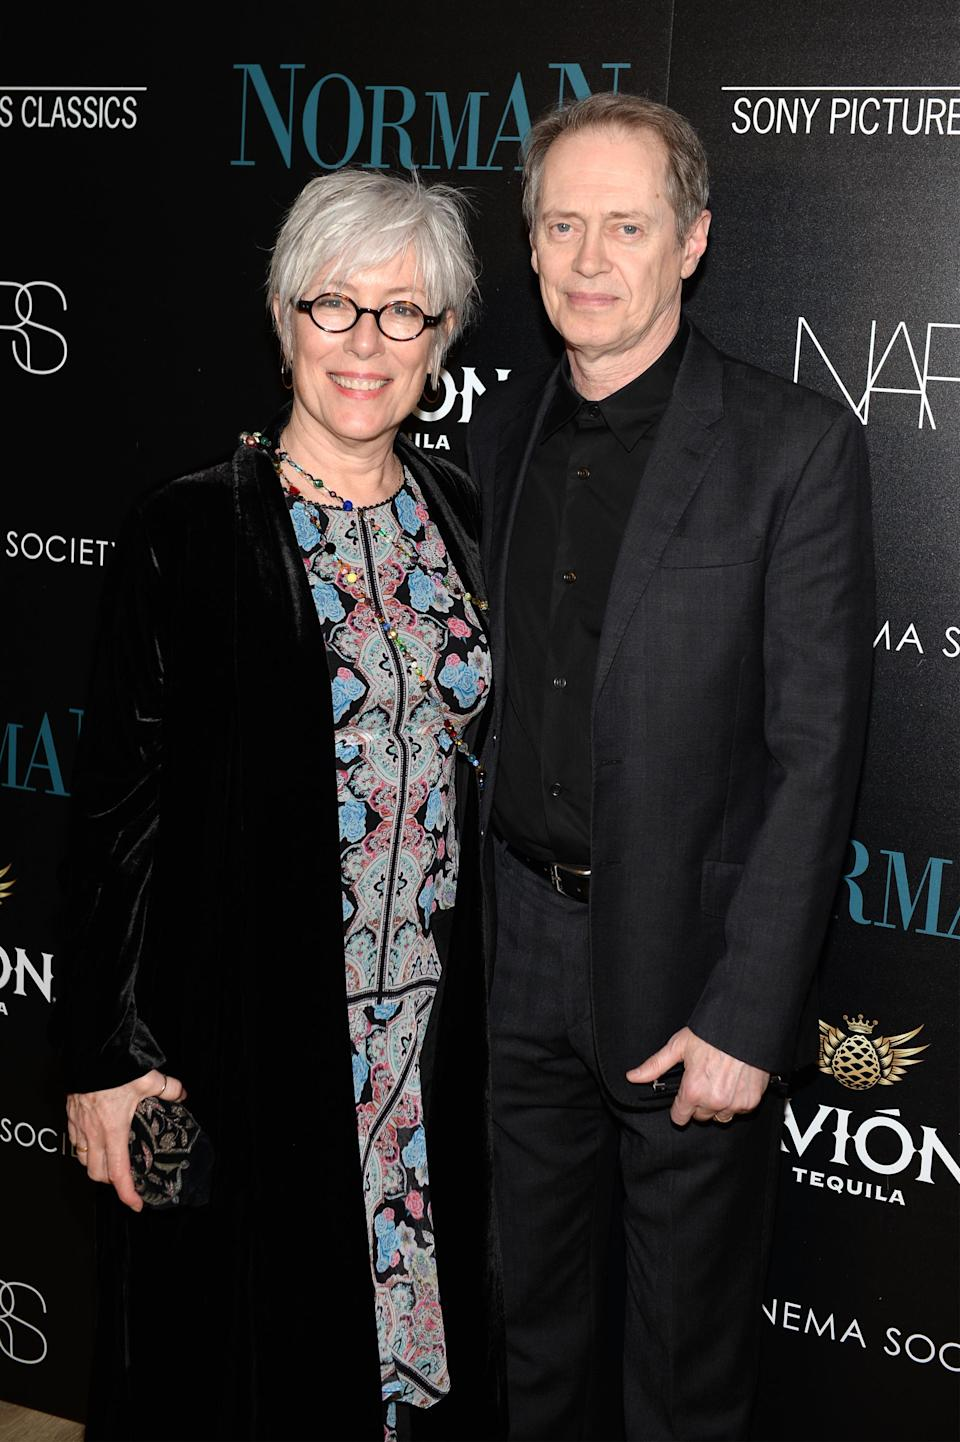 Steve Buscemi opens up about 2019 death of his artist and filmmaker wife, Jo Andres. They are pictured together here in 2017. (Photo: Andrew Toth/FilmMagic)